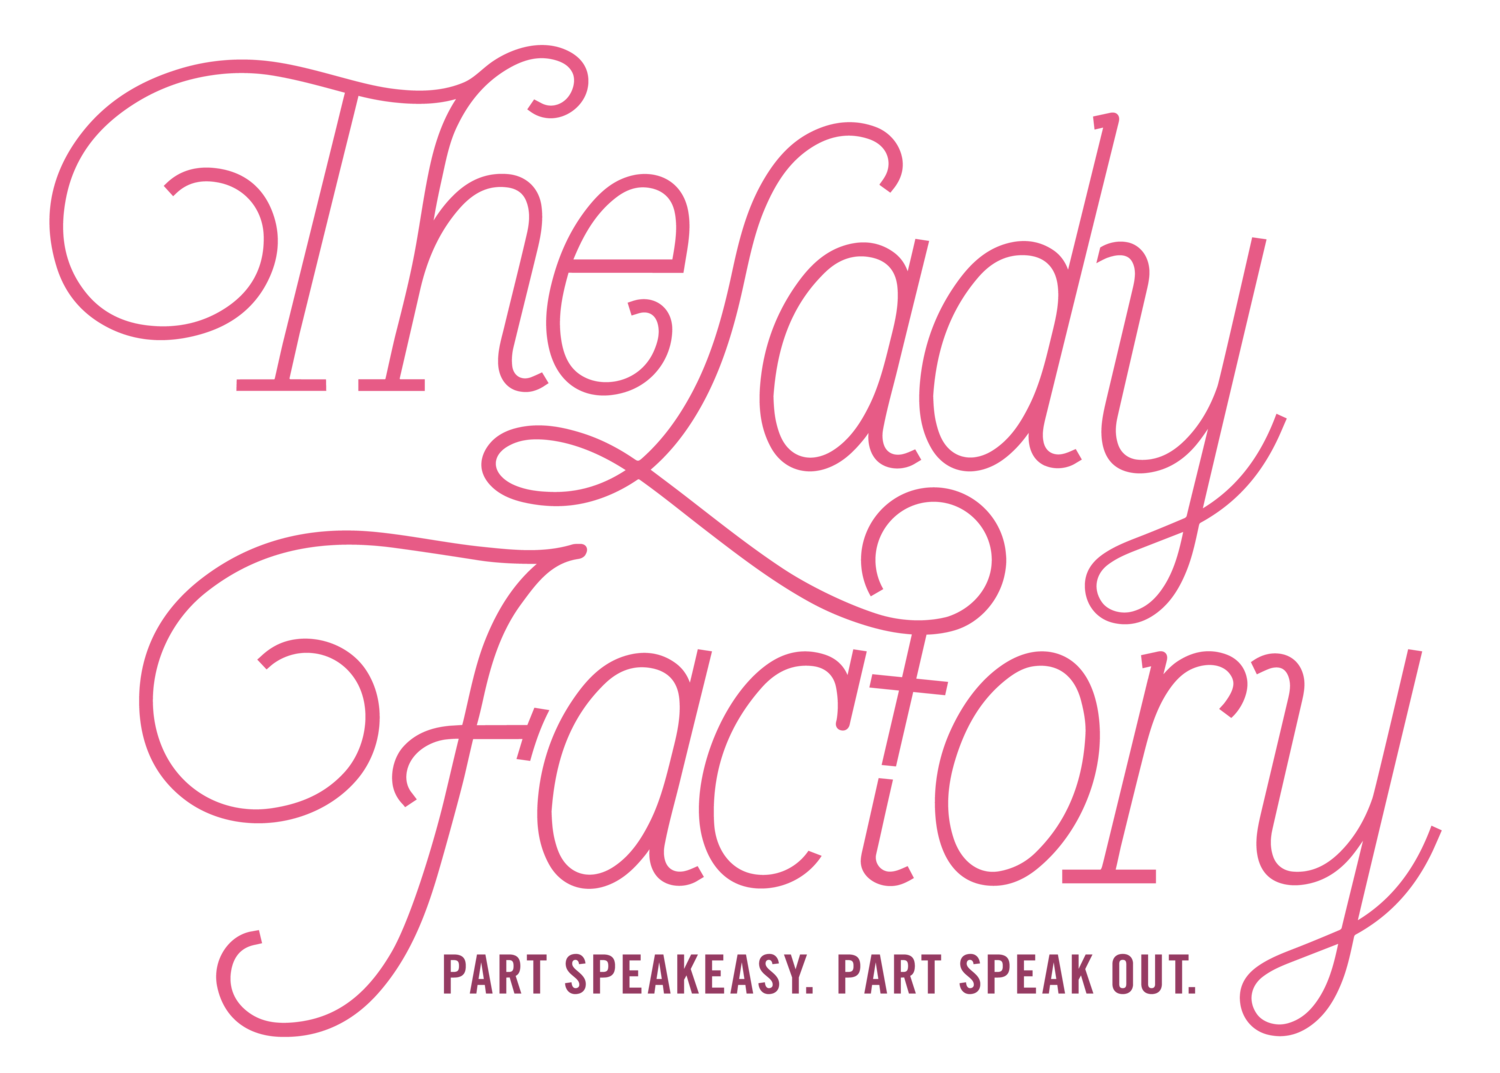 The Lady Factory